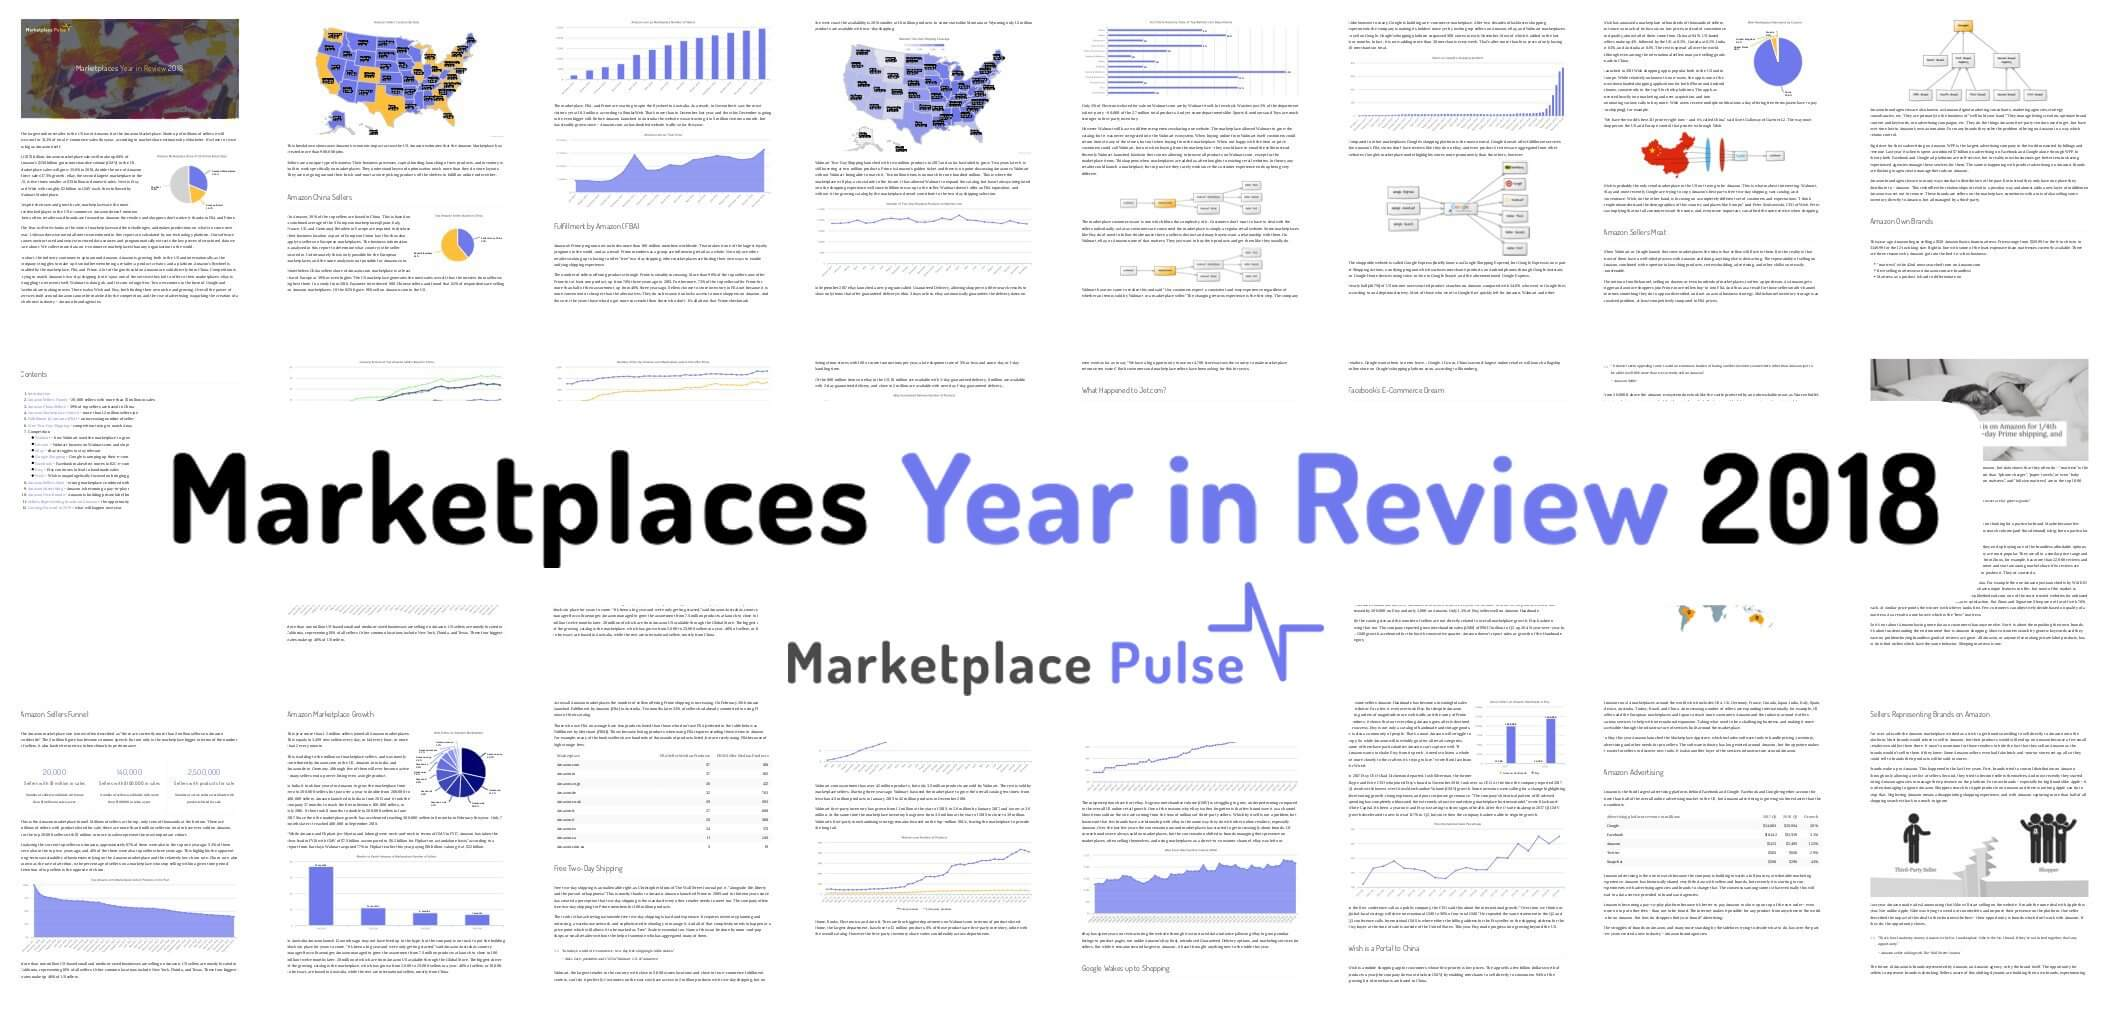 Marketplaces Year in Review 2018